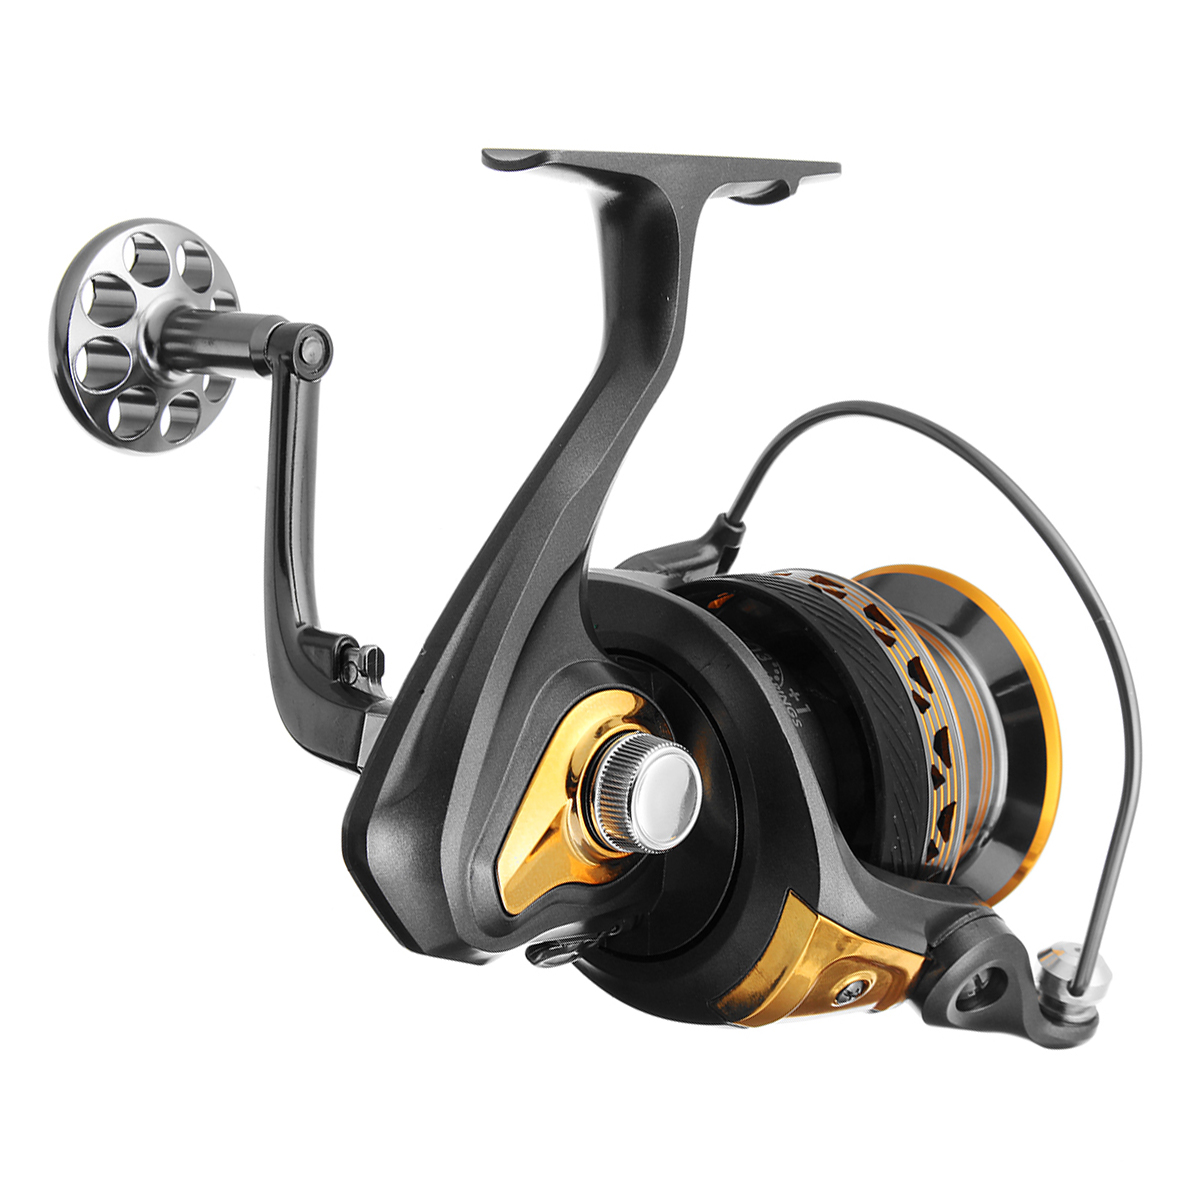 ZANLURE 5.2:1/4.7:1 13+1BB 4000-7000 Big Spool Spinning Fishing Reel Saltwater Casting Fishing Reel